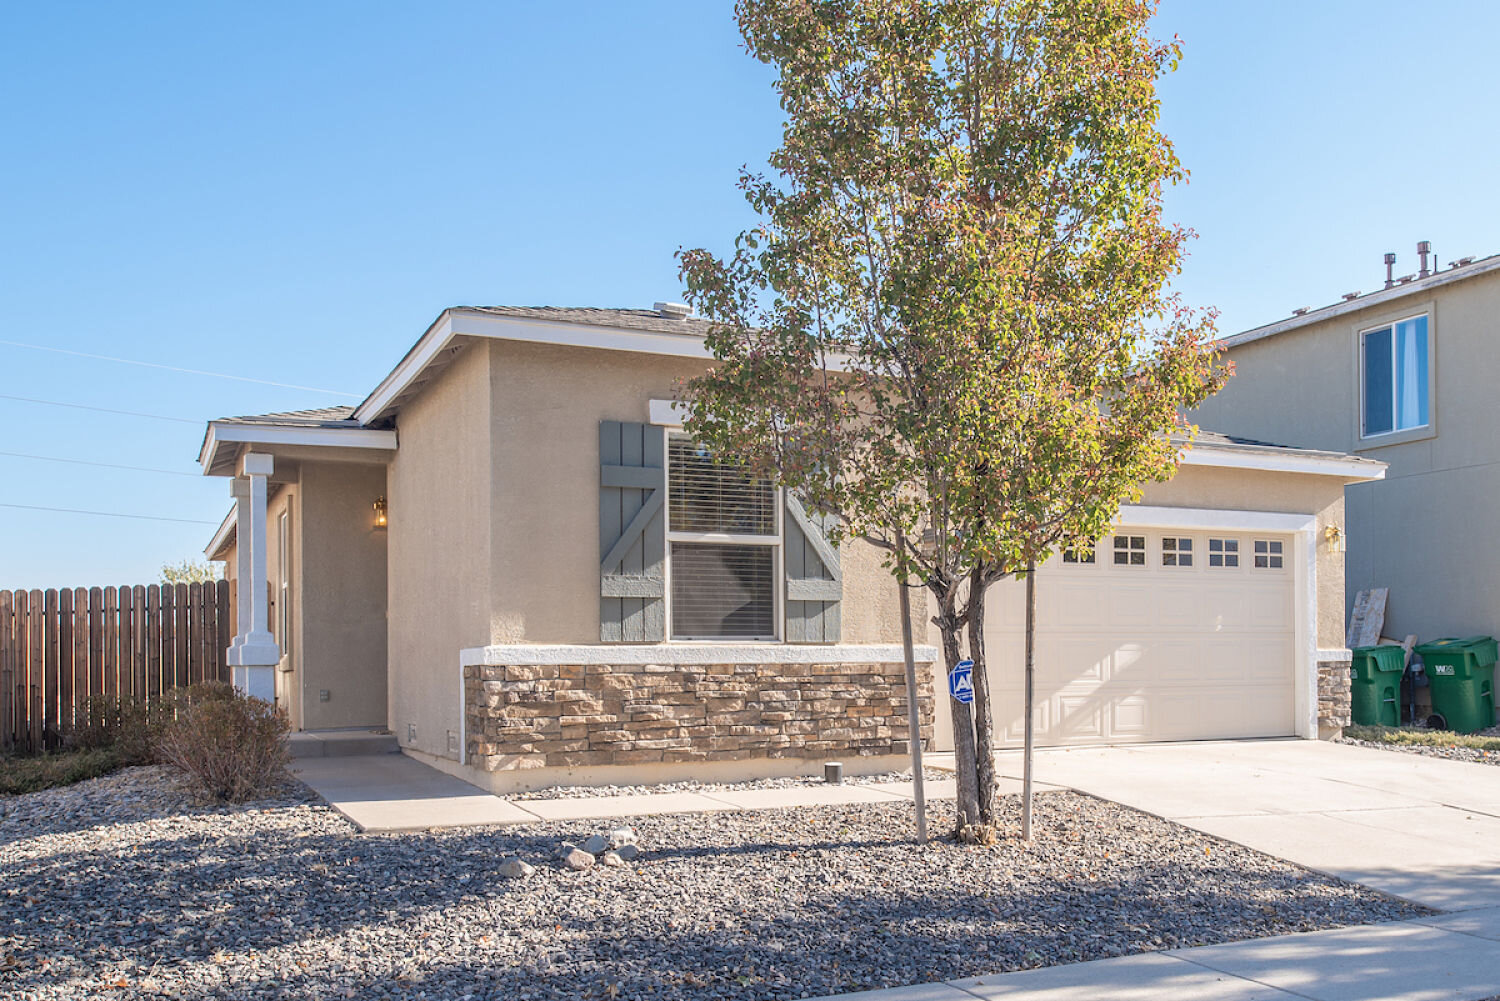 9320 Red Baron Blvd - $289,000 | 1,247 sq ft | 0.12 acres | 3 bedrooms | 2 bathrooms | 2-car garage